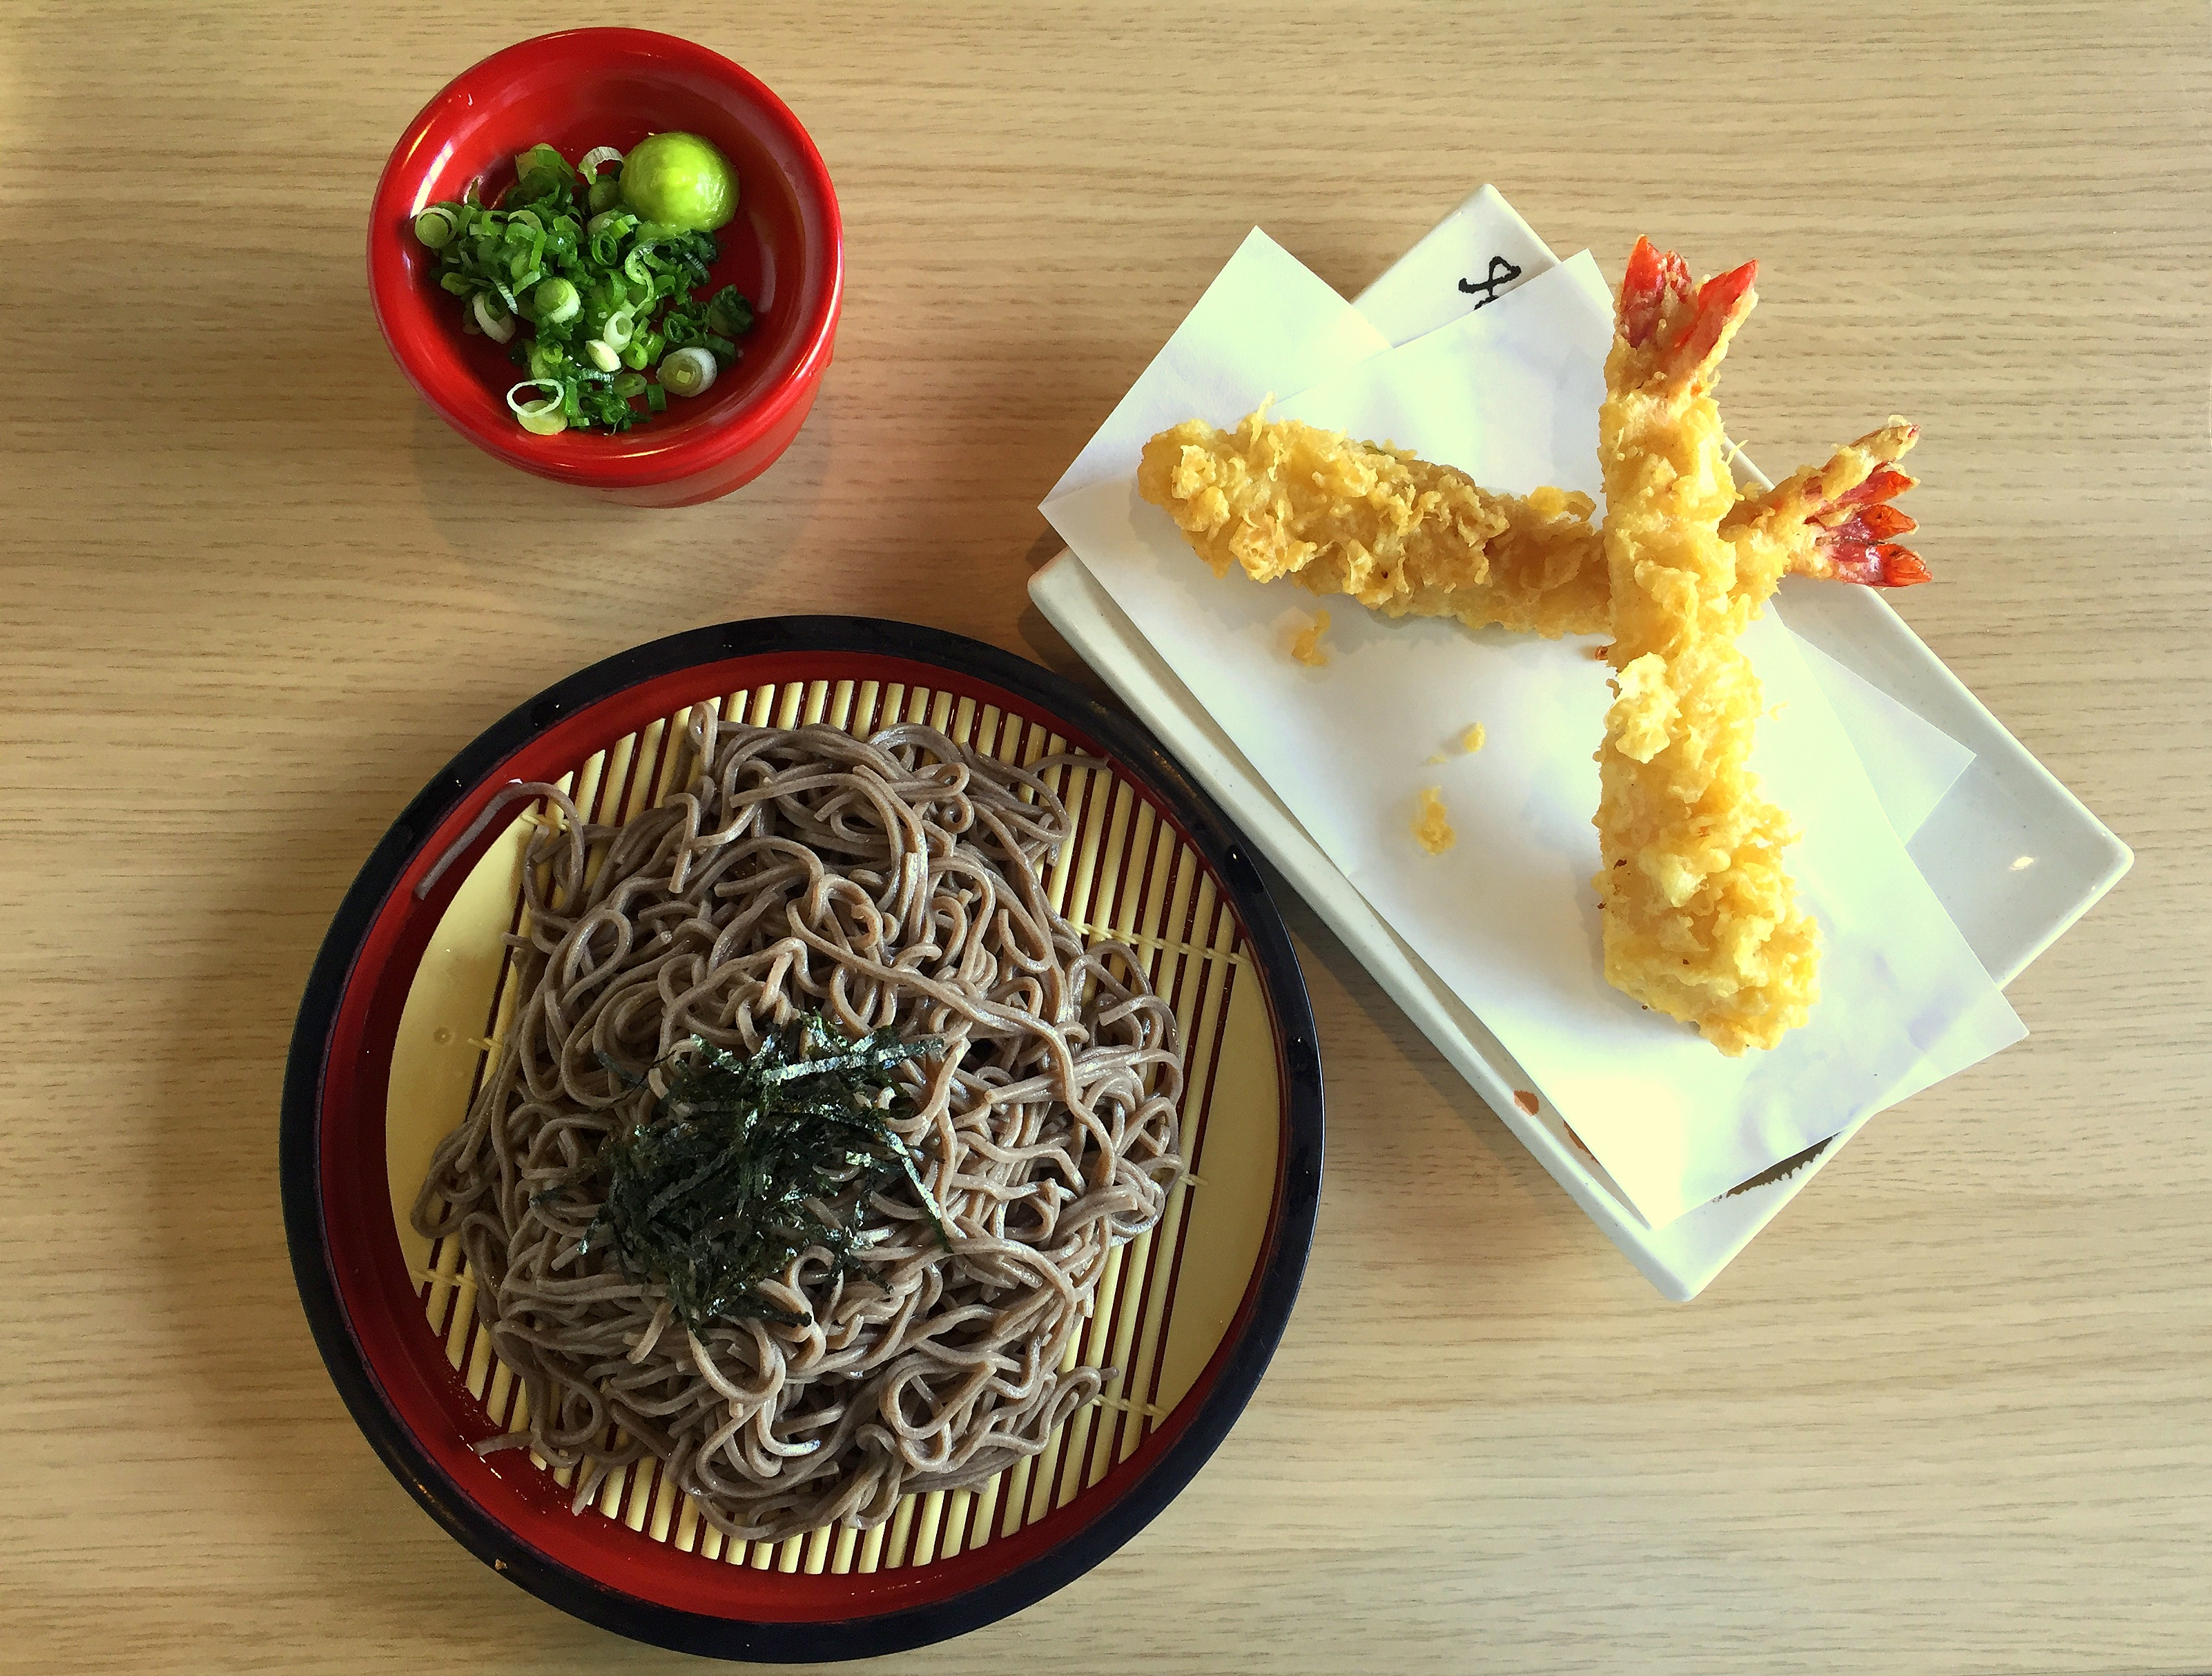 cold-soba-noodles-and-tempura-shrimp-at-musashiya